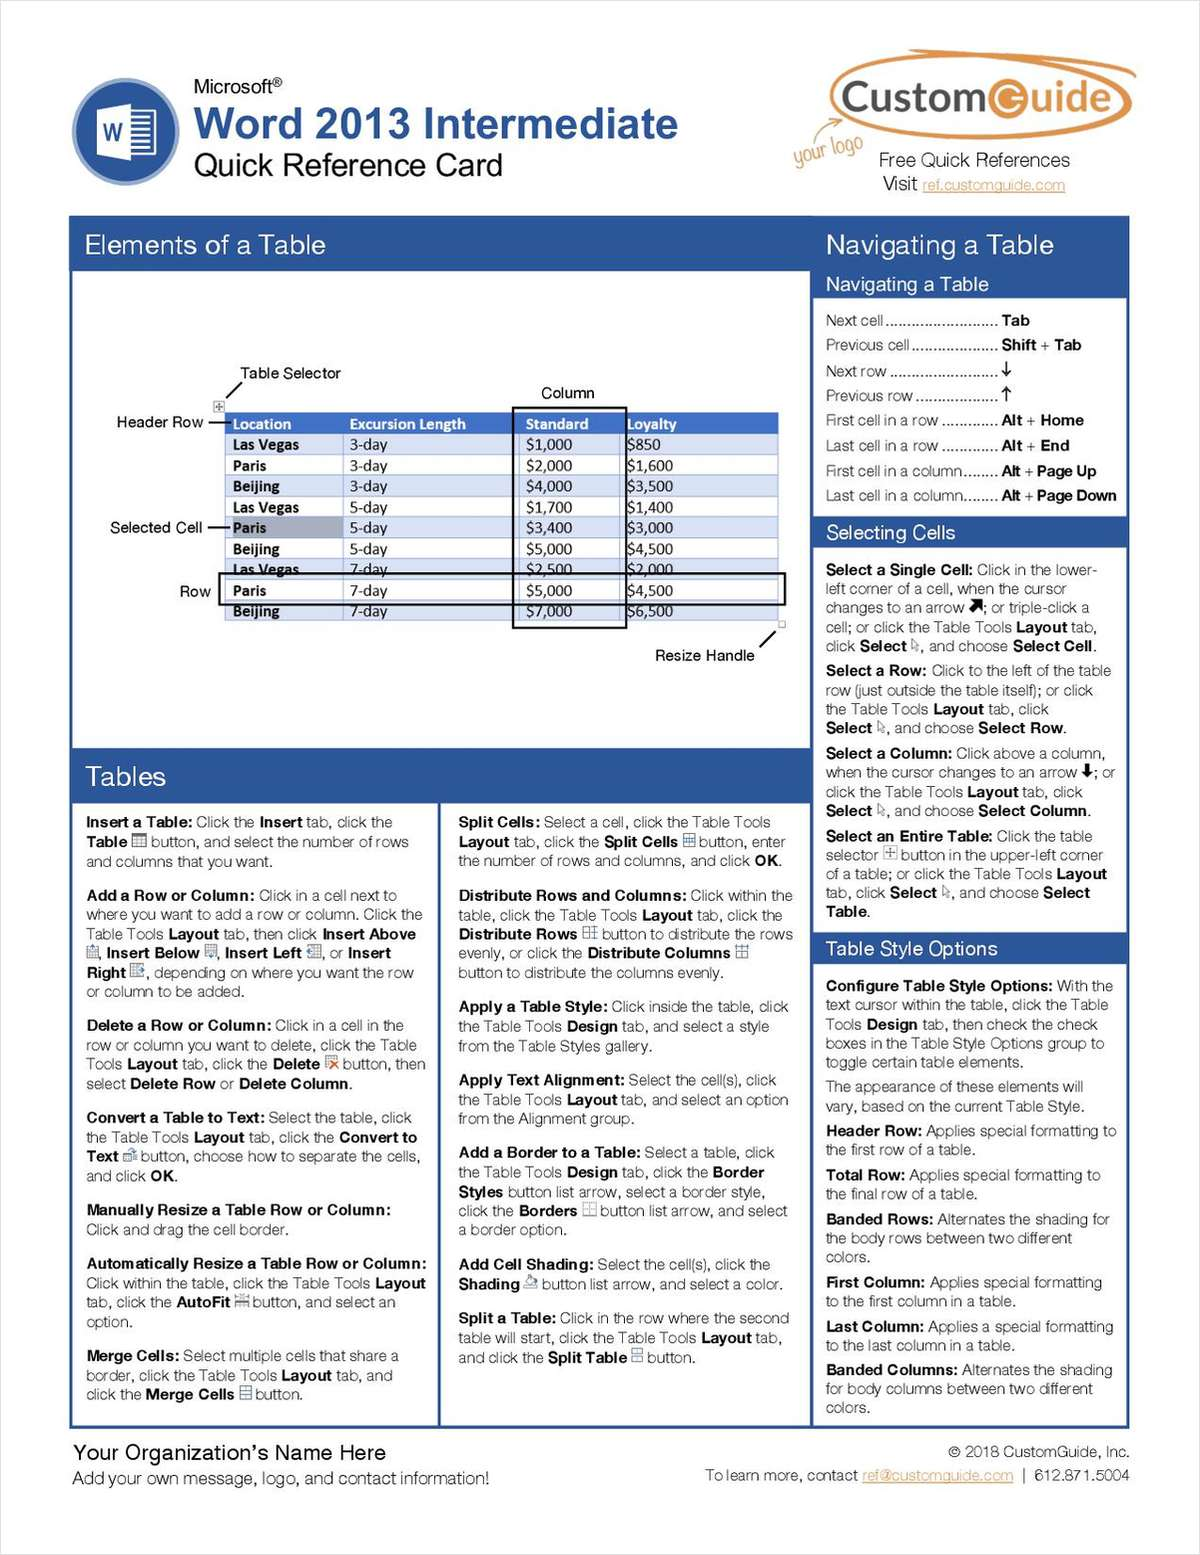 Microsoft Word 2013 Intermediate - Quick Reference Card